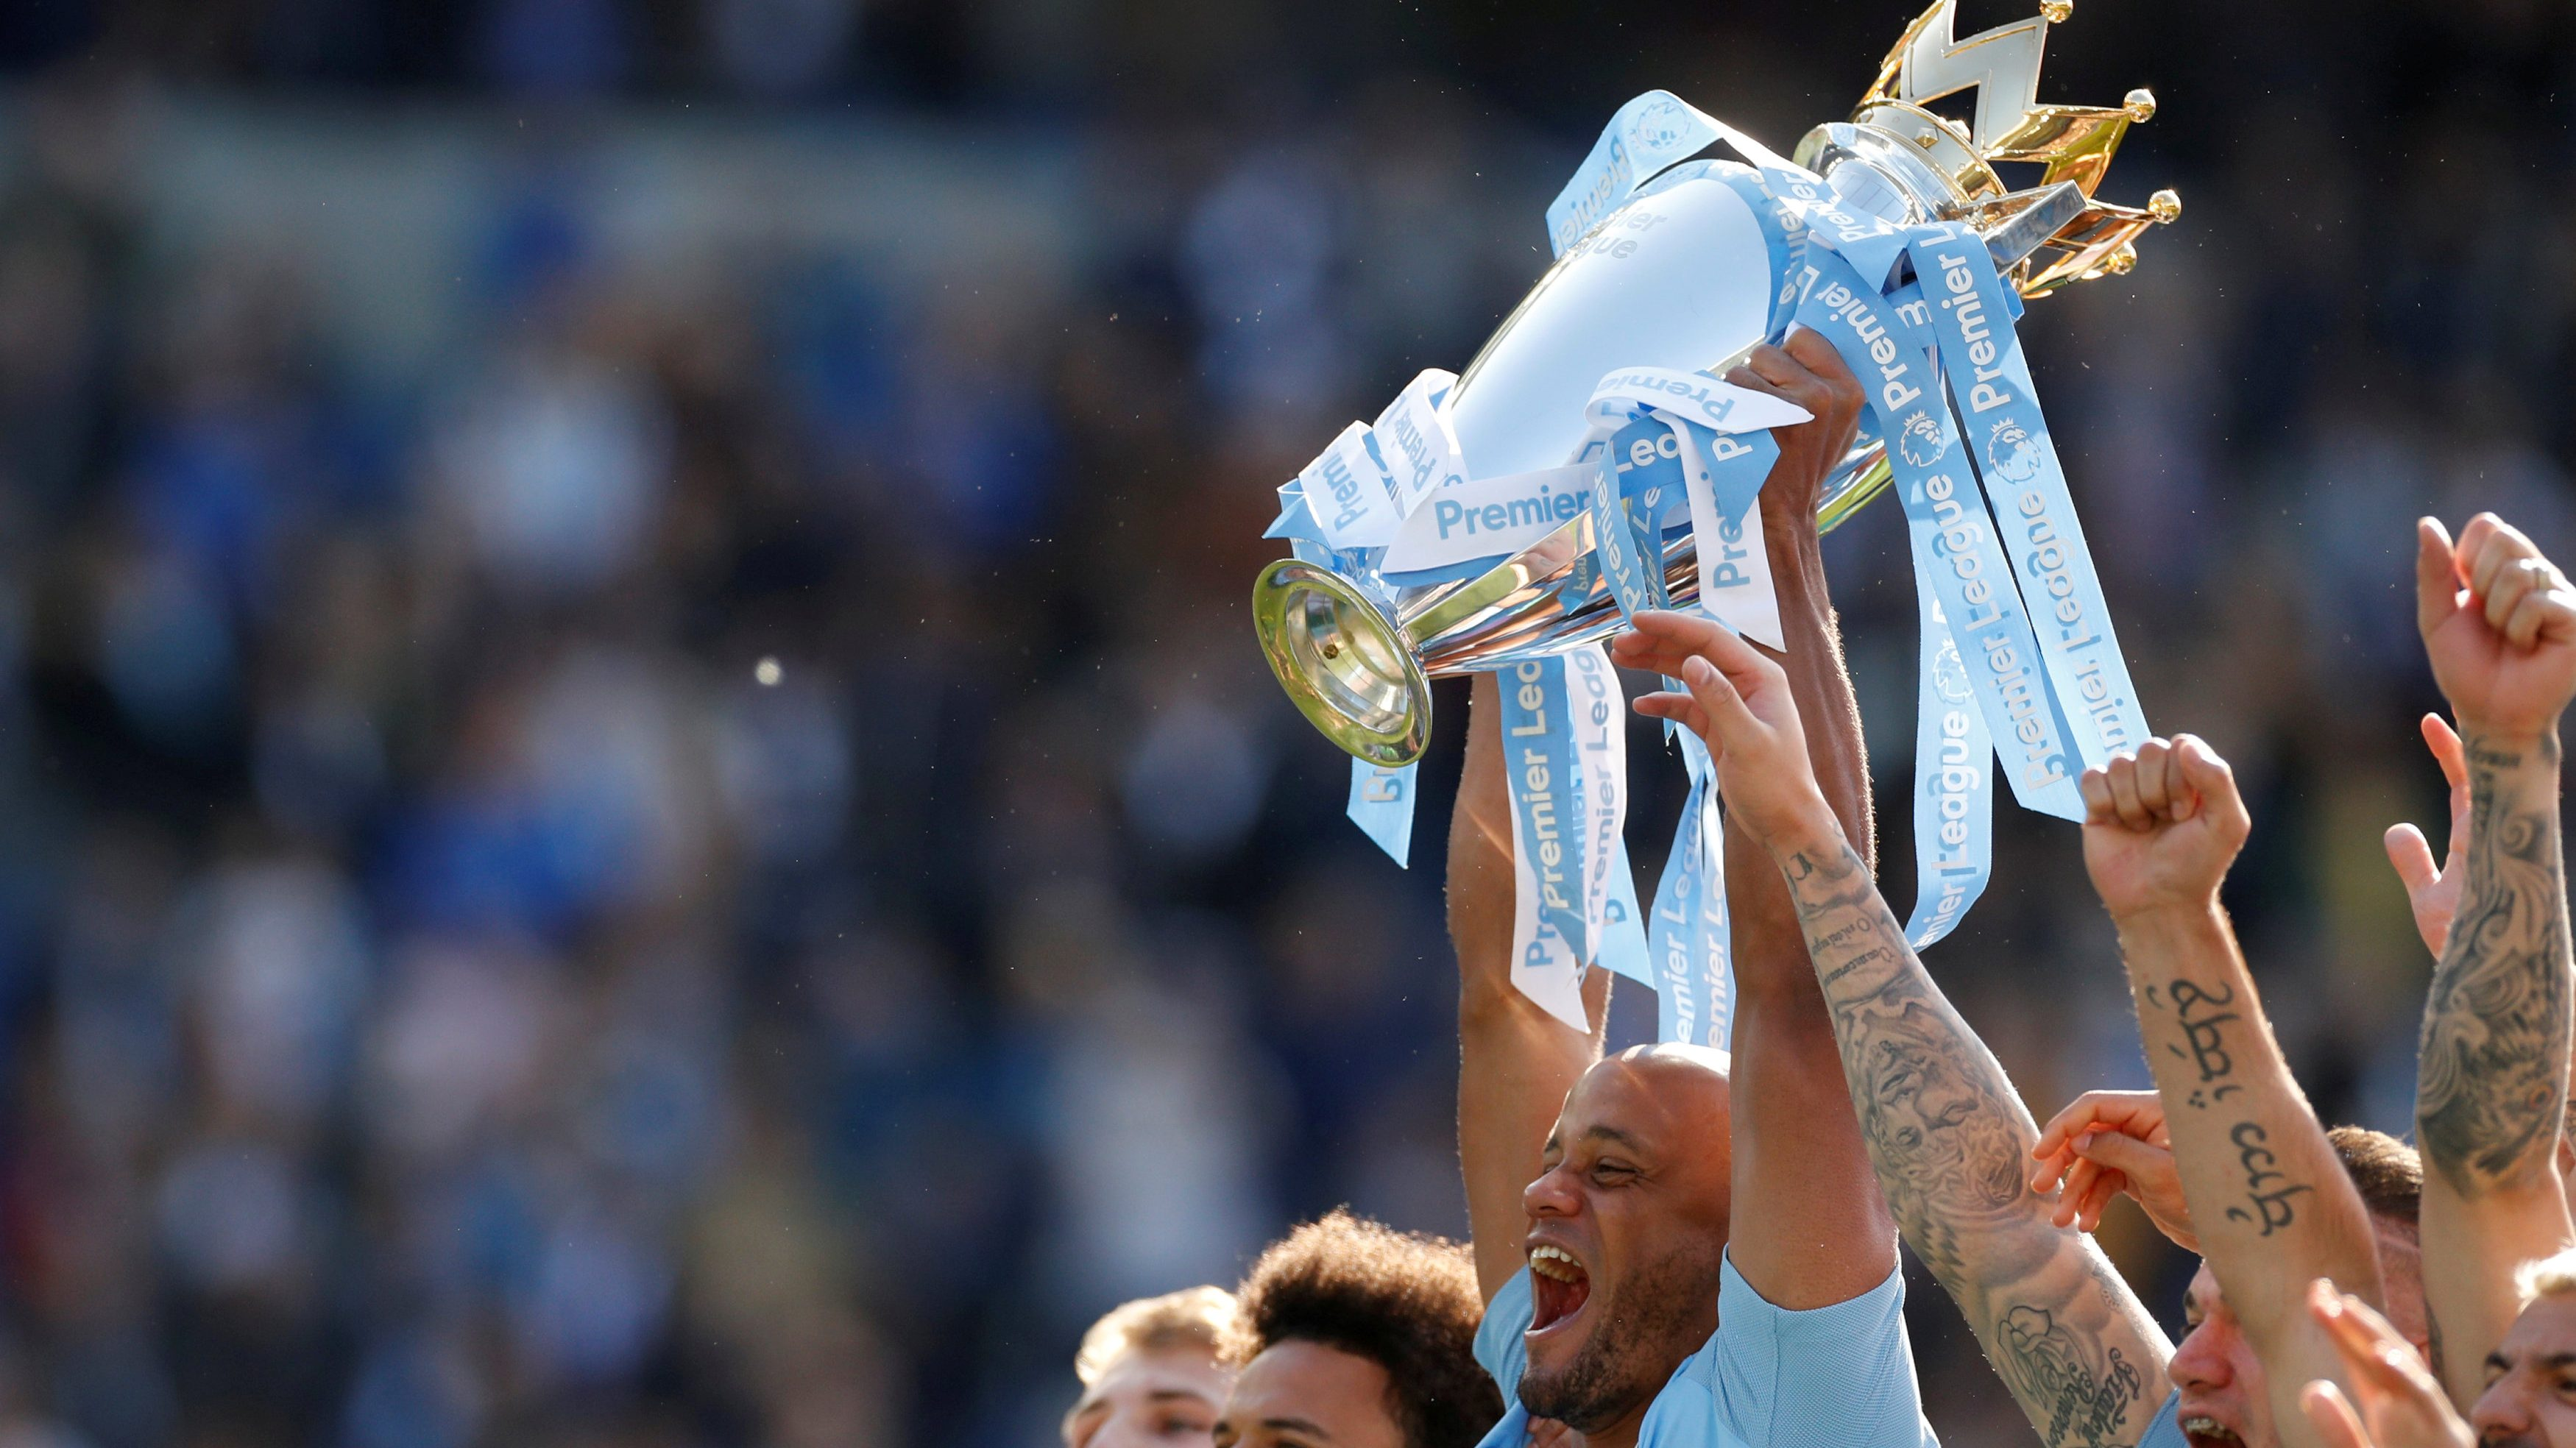 How Manchester City's owners became the Disney of sport